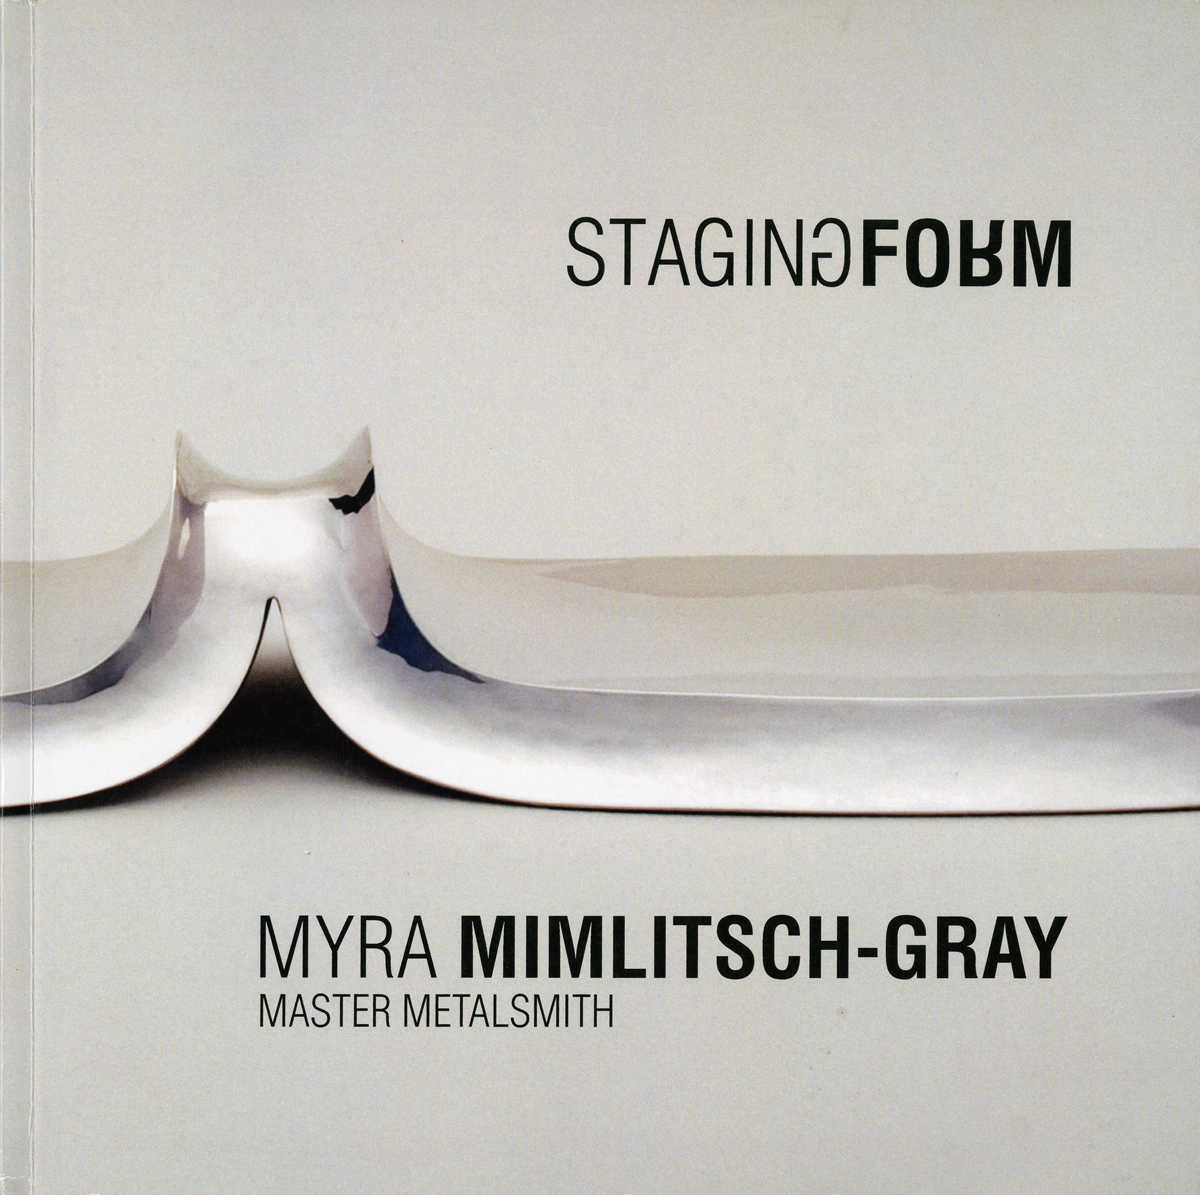 "Myra Mimlitsch-Gray, Staging Form: Myra Mimlitsch-Gray, Master Metalsmith. Memphis: Metal Museum, 2014. Published in conjunction with the exhibition ""Master Metalsmith 2014: Myra Mimlitsch-Gray,"" shown at the National Ornamental Metal Museum, Memphis, TN."